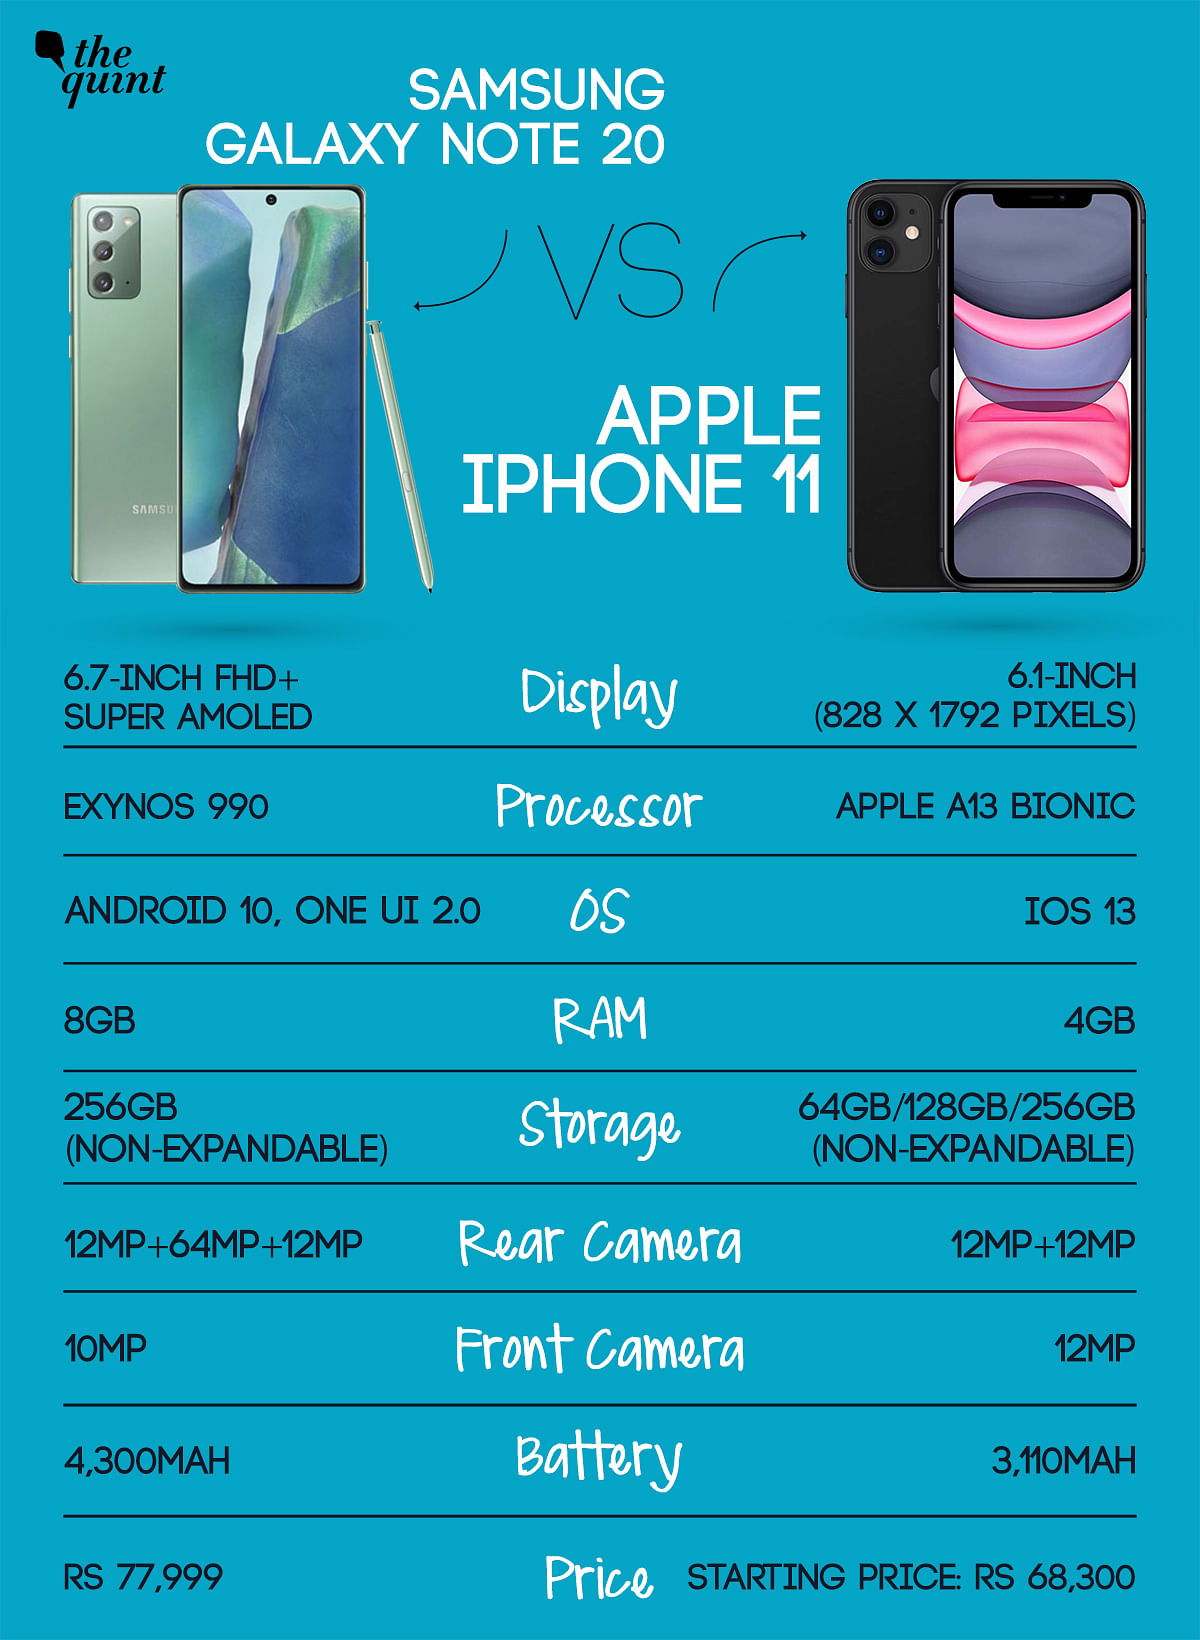 A spec to spec comparison between the Note 20 and the iPhone 11.